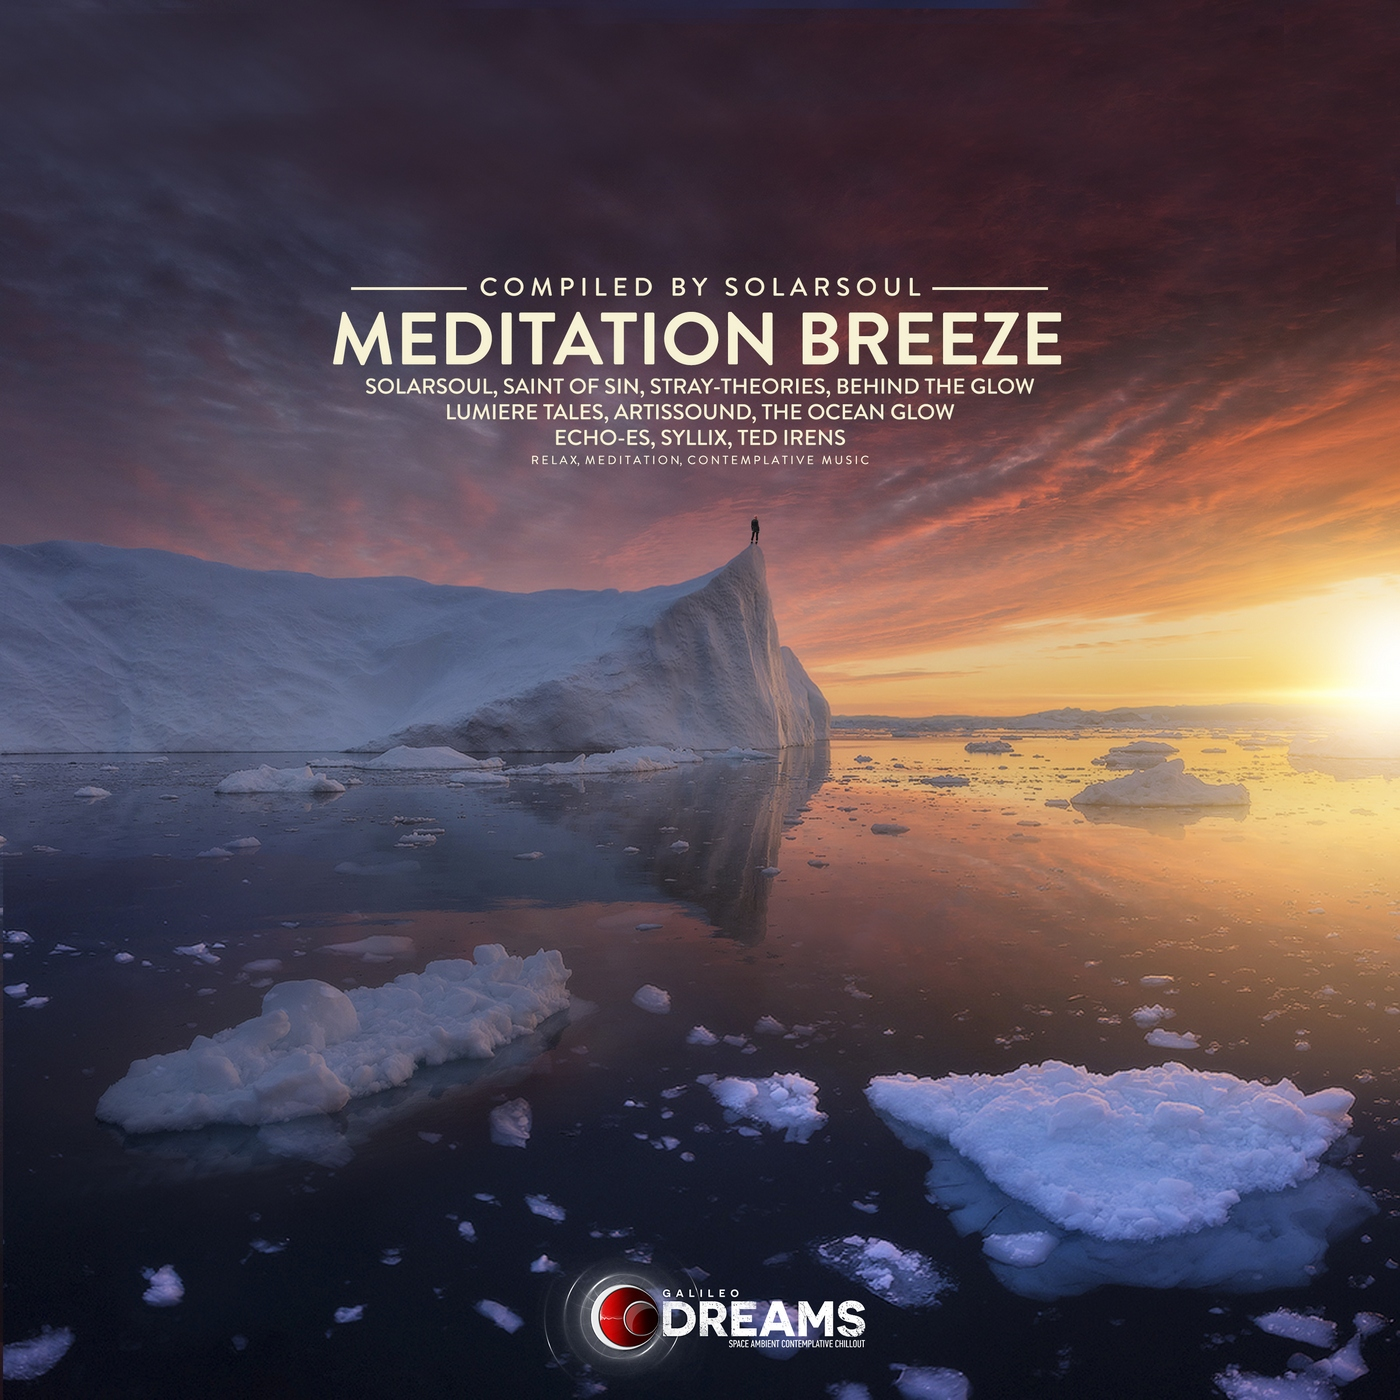 MEDITATION BREEZE